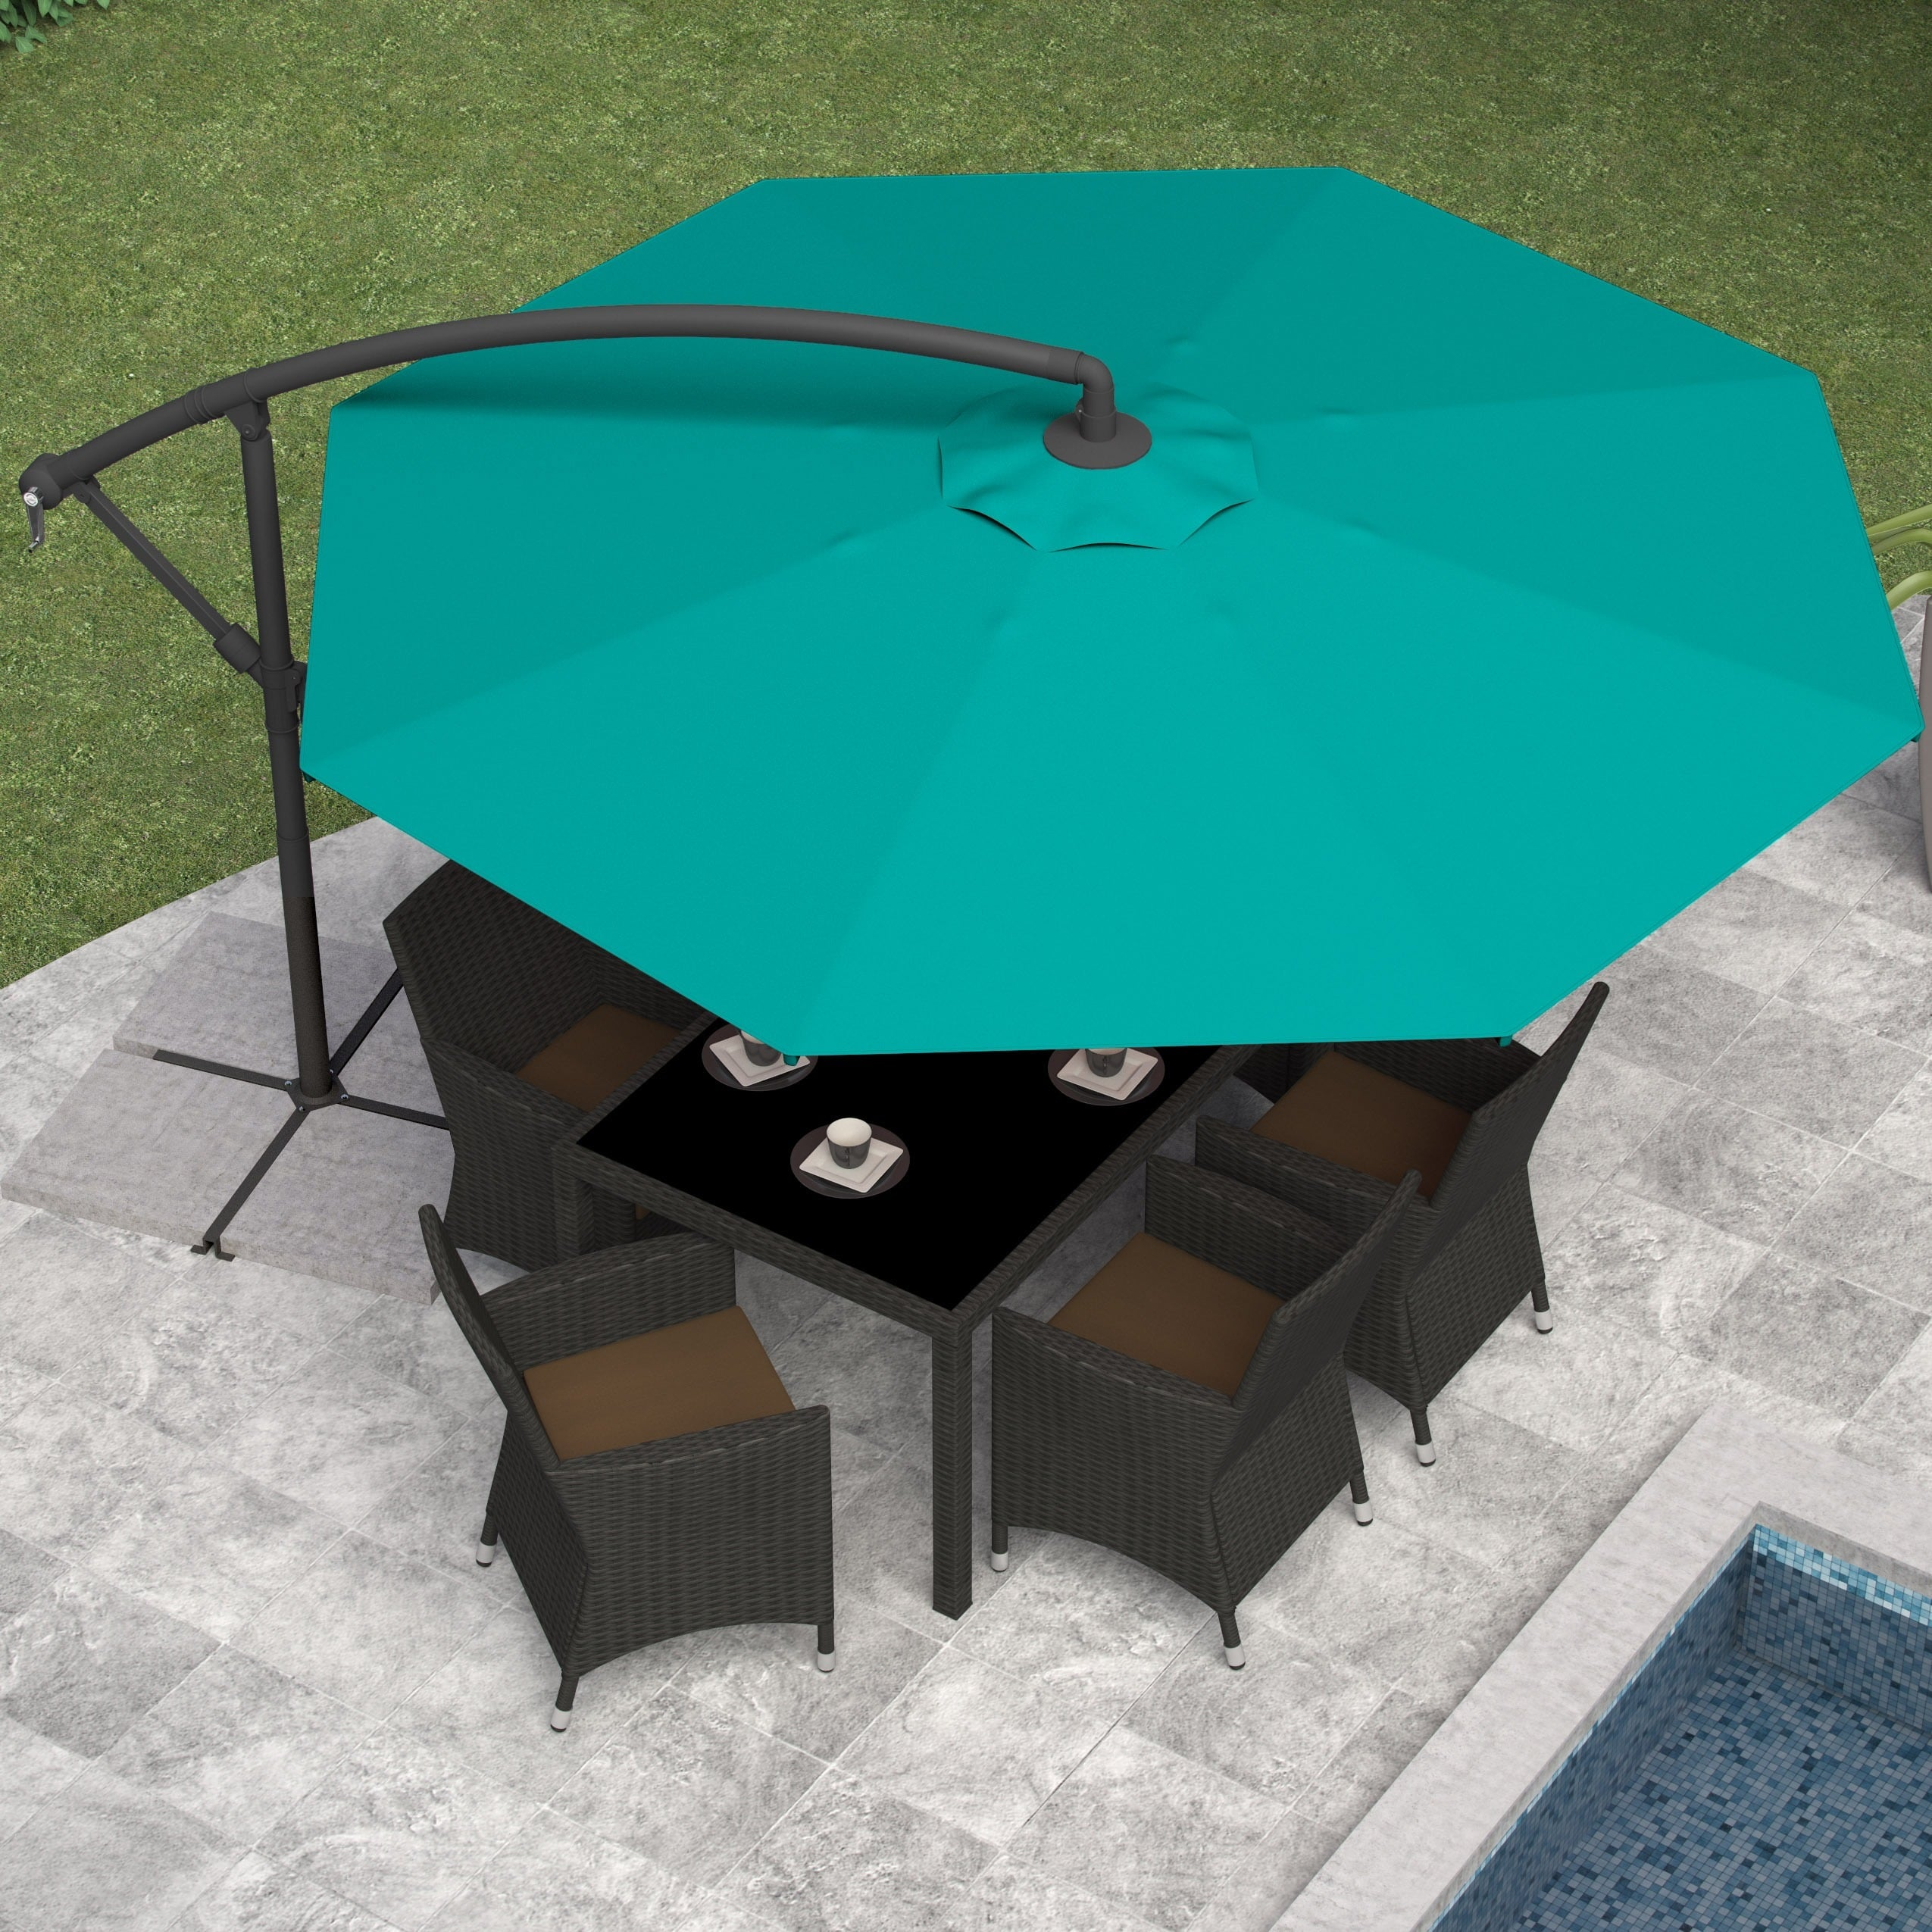 red fabulous shop fset offset x patio garden ft mon w umbrella of umbrellas treasures